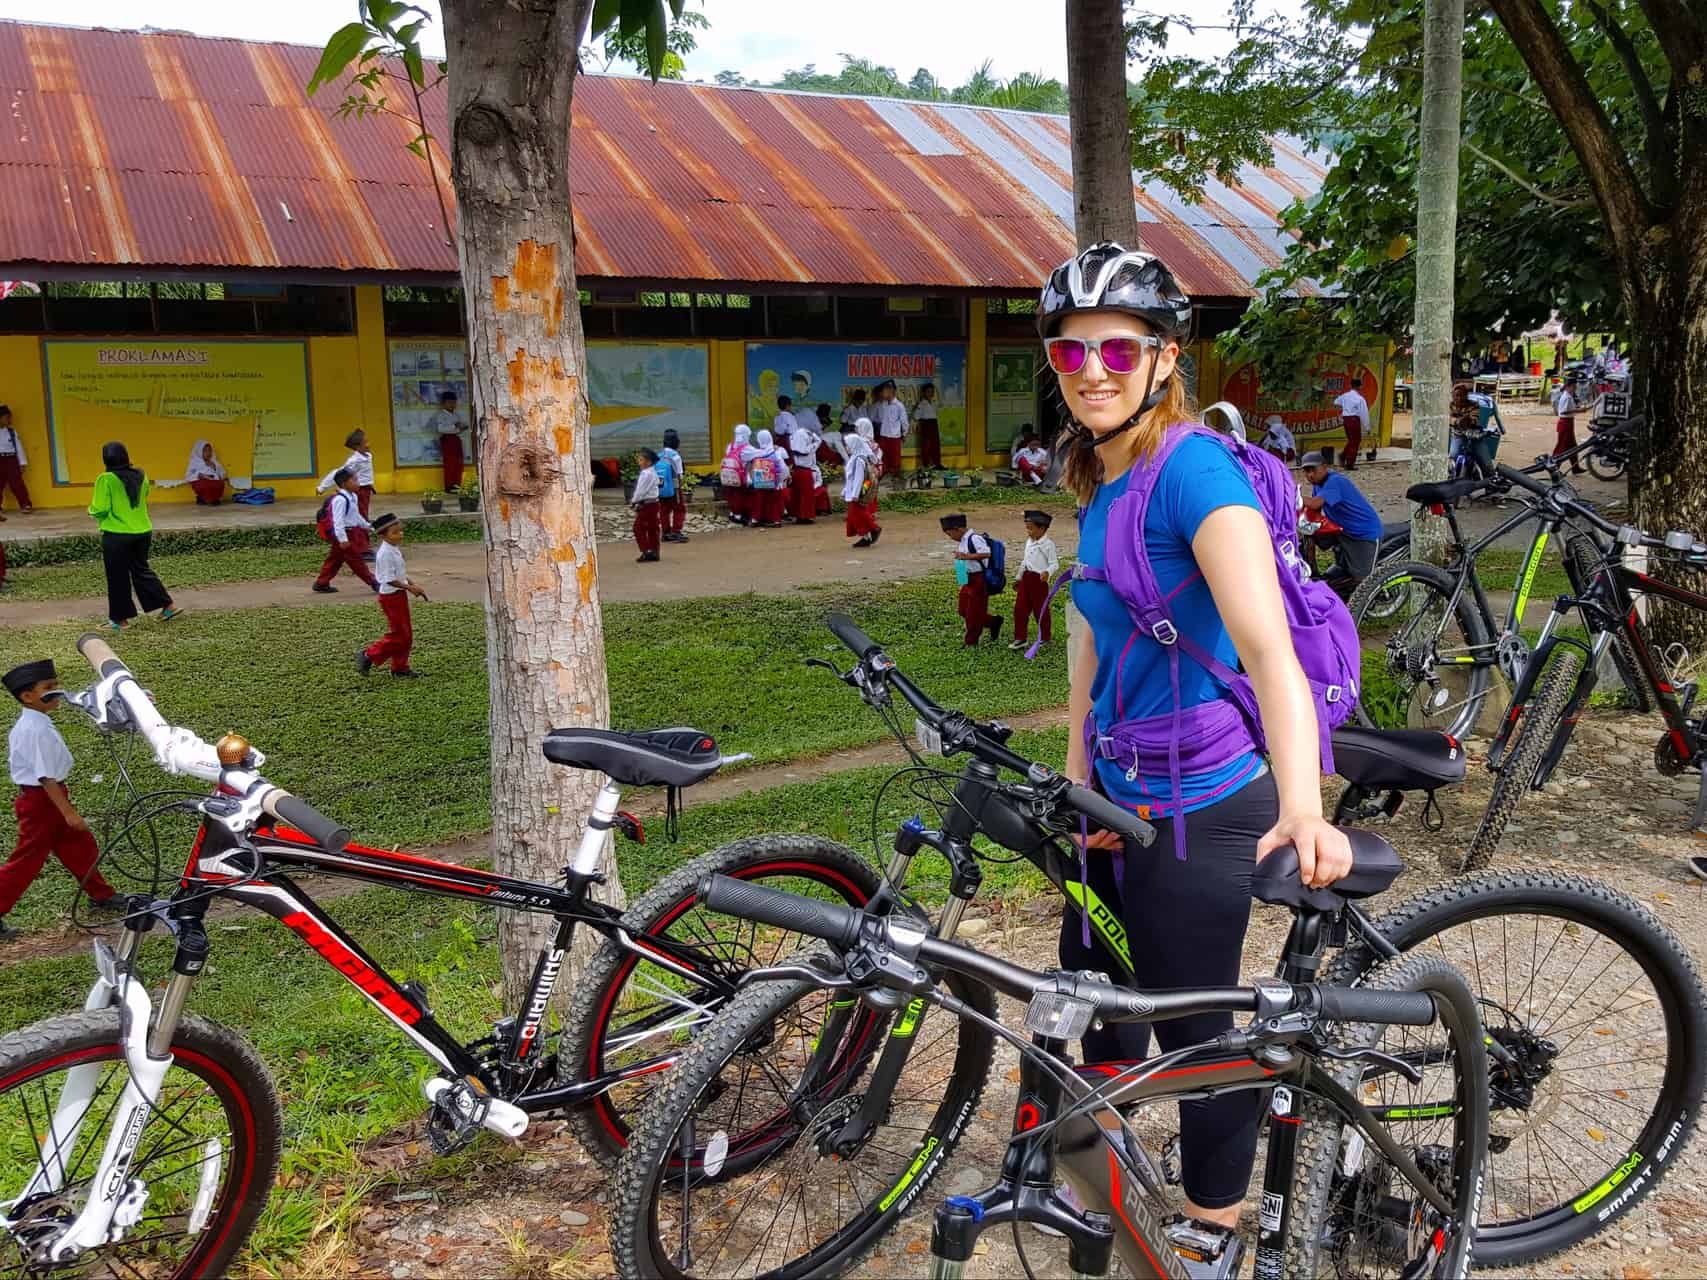 MOUNTAIN BIKE TOUR - VILLAGE LIFE - SUMATRA ECOTRAVEL BUKIT LAWANG